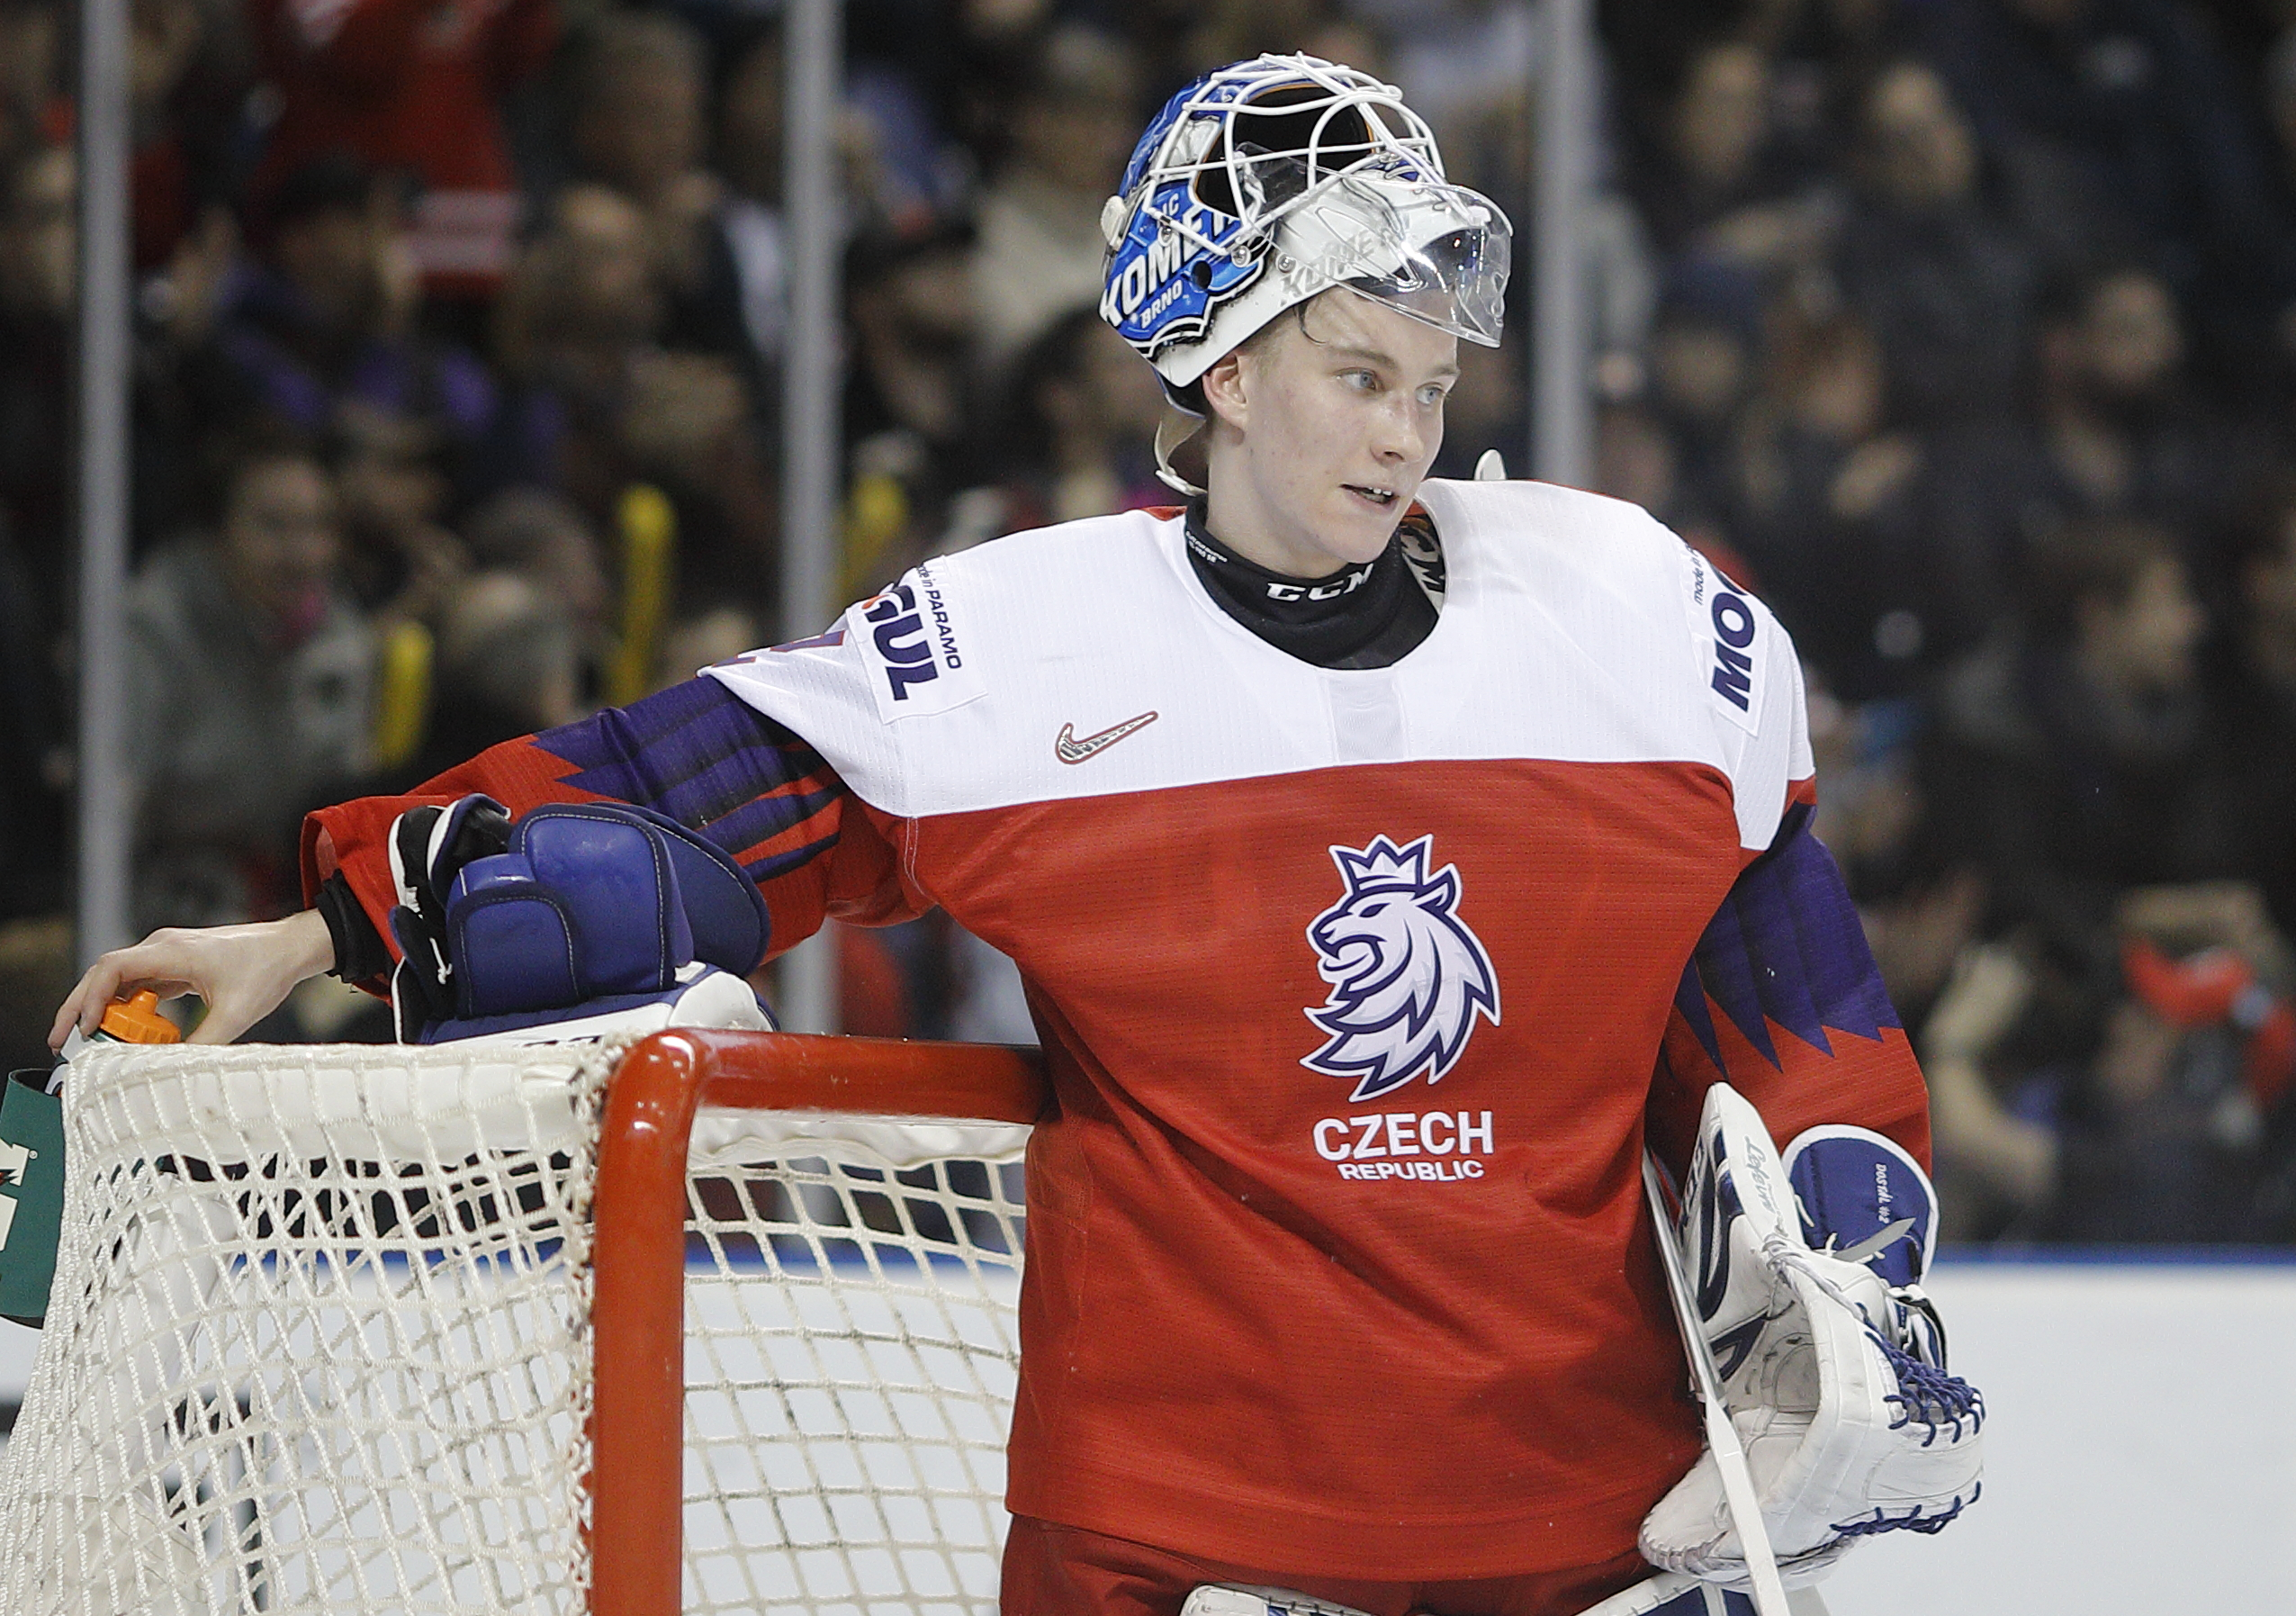 Goaltender Lukas Dostal #2 of the Czech Republic reaches for his water bottle against the United States during a quarter-final game at the IIHF World Junior Championships at the Save-on-Foods Memorial Centre on January 2, 2019 in Victoria, British Columbia, Canada.